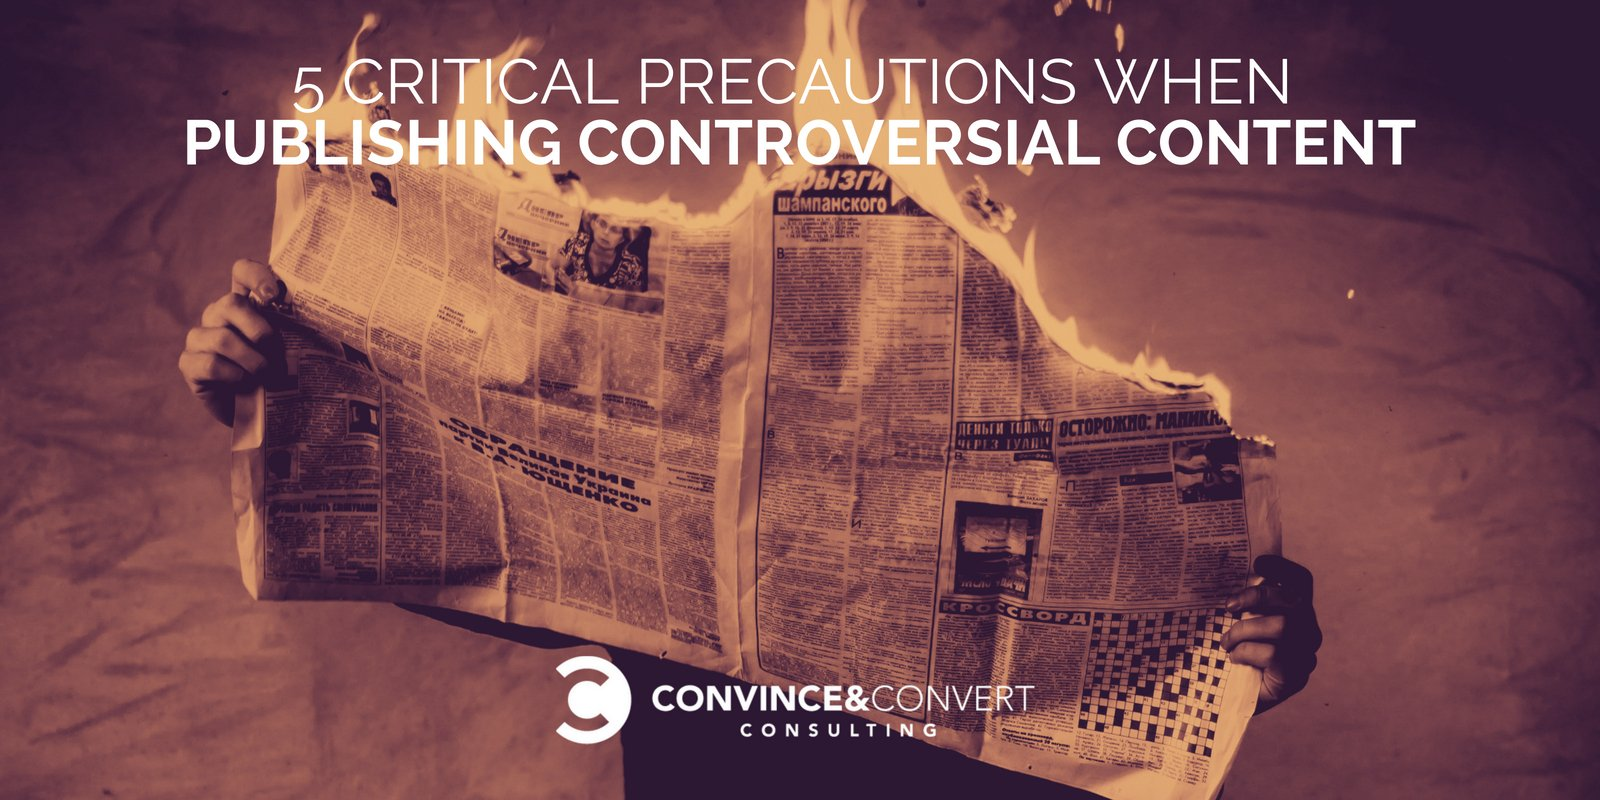 5 Critical Precautions When Publishing Controversial Content